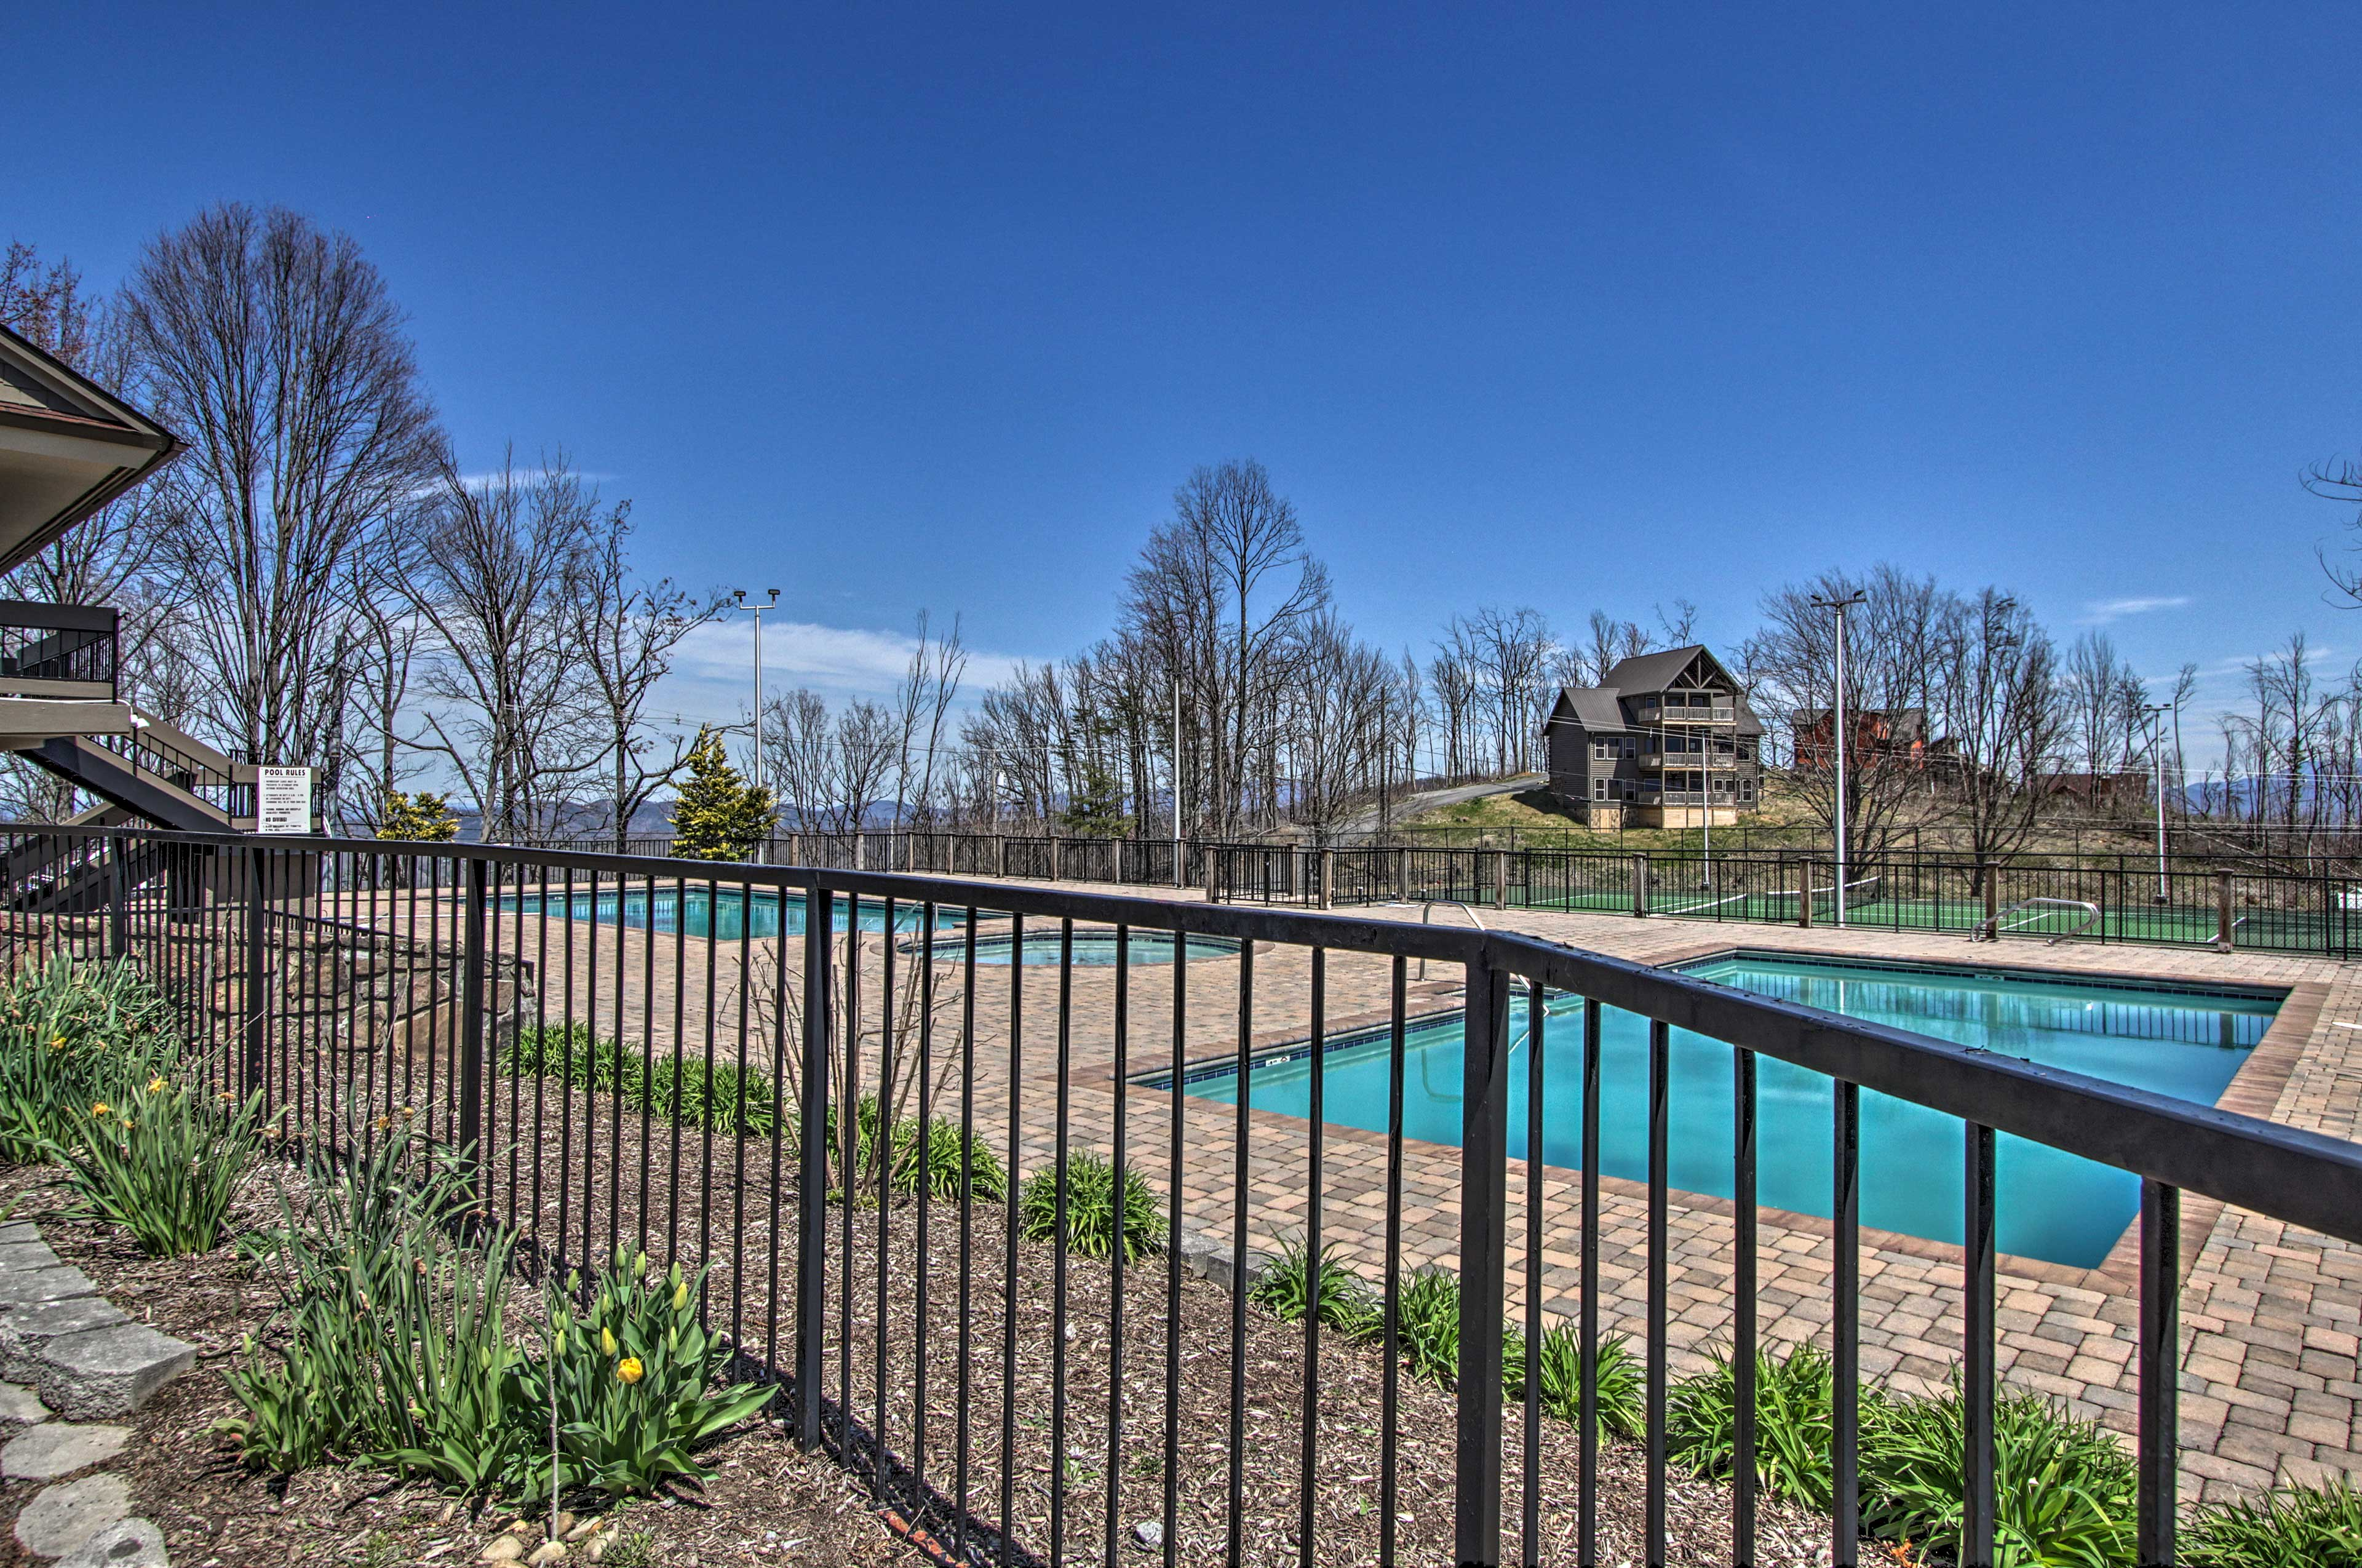 Don't forget to check out the community pool if you visit in warmer months!